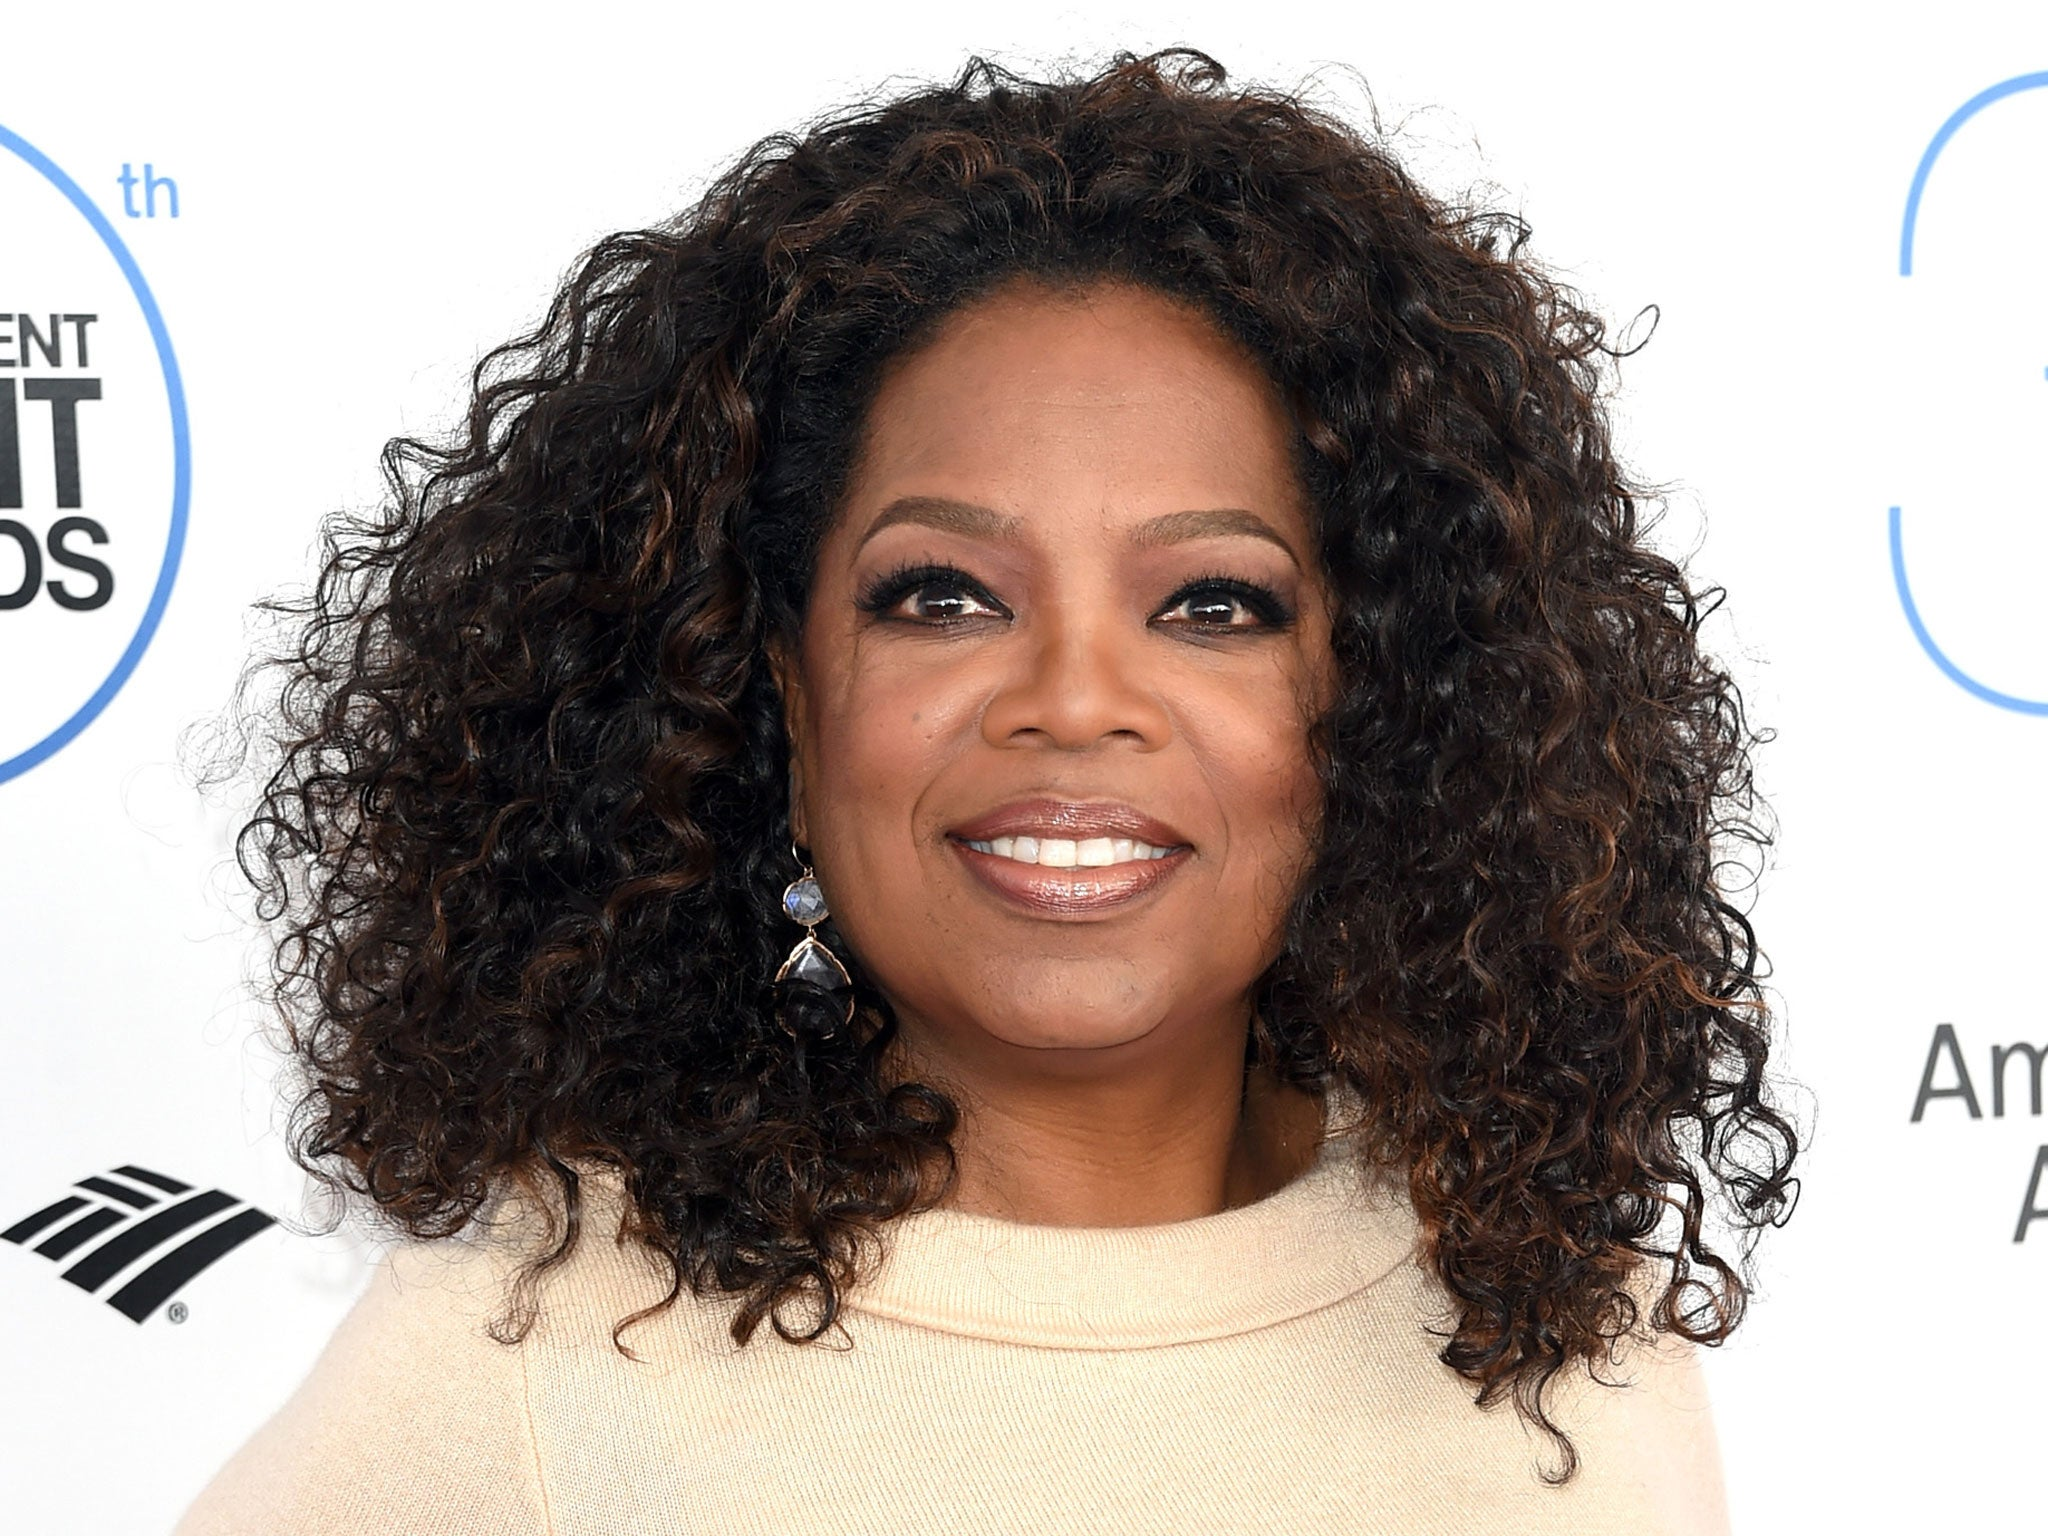 Oprah Winfrey  Latest News Breaking Stories And Comment  The  Oprah Made  Million From Weight Watchers Tweet About Bread Political Science Essay Topics also Mental Health Essays  High School Experience Essay